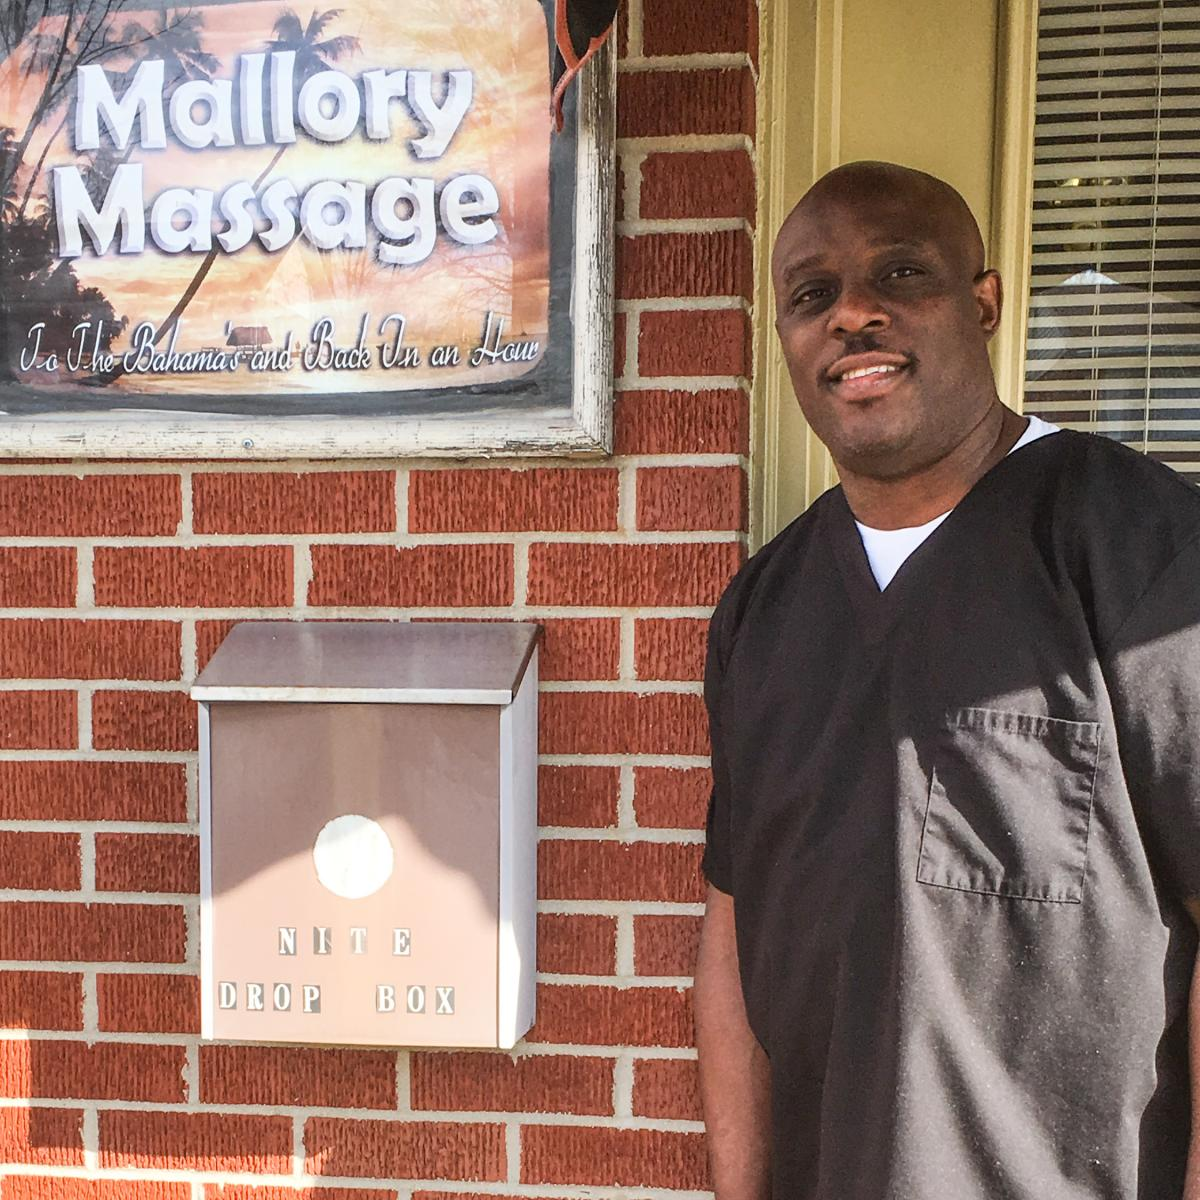 Steven Mallory stands outside his massage clinic.